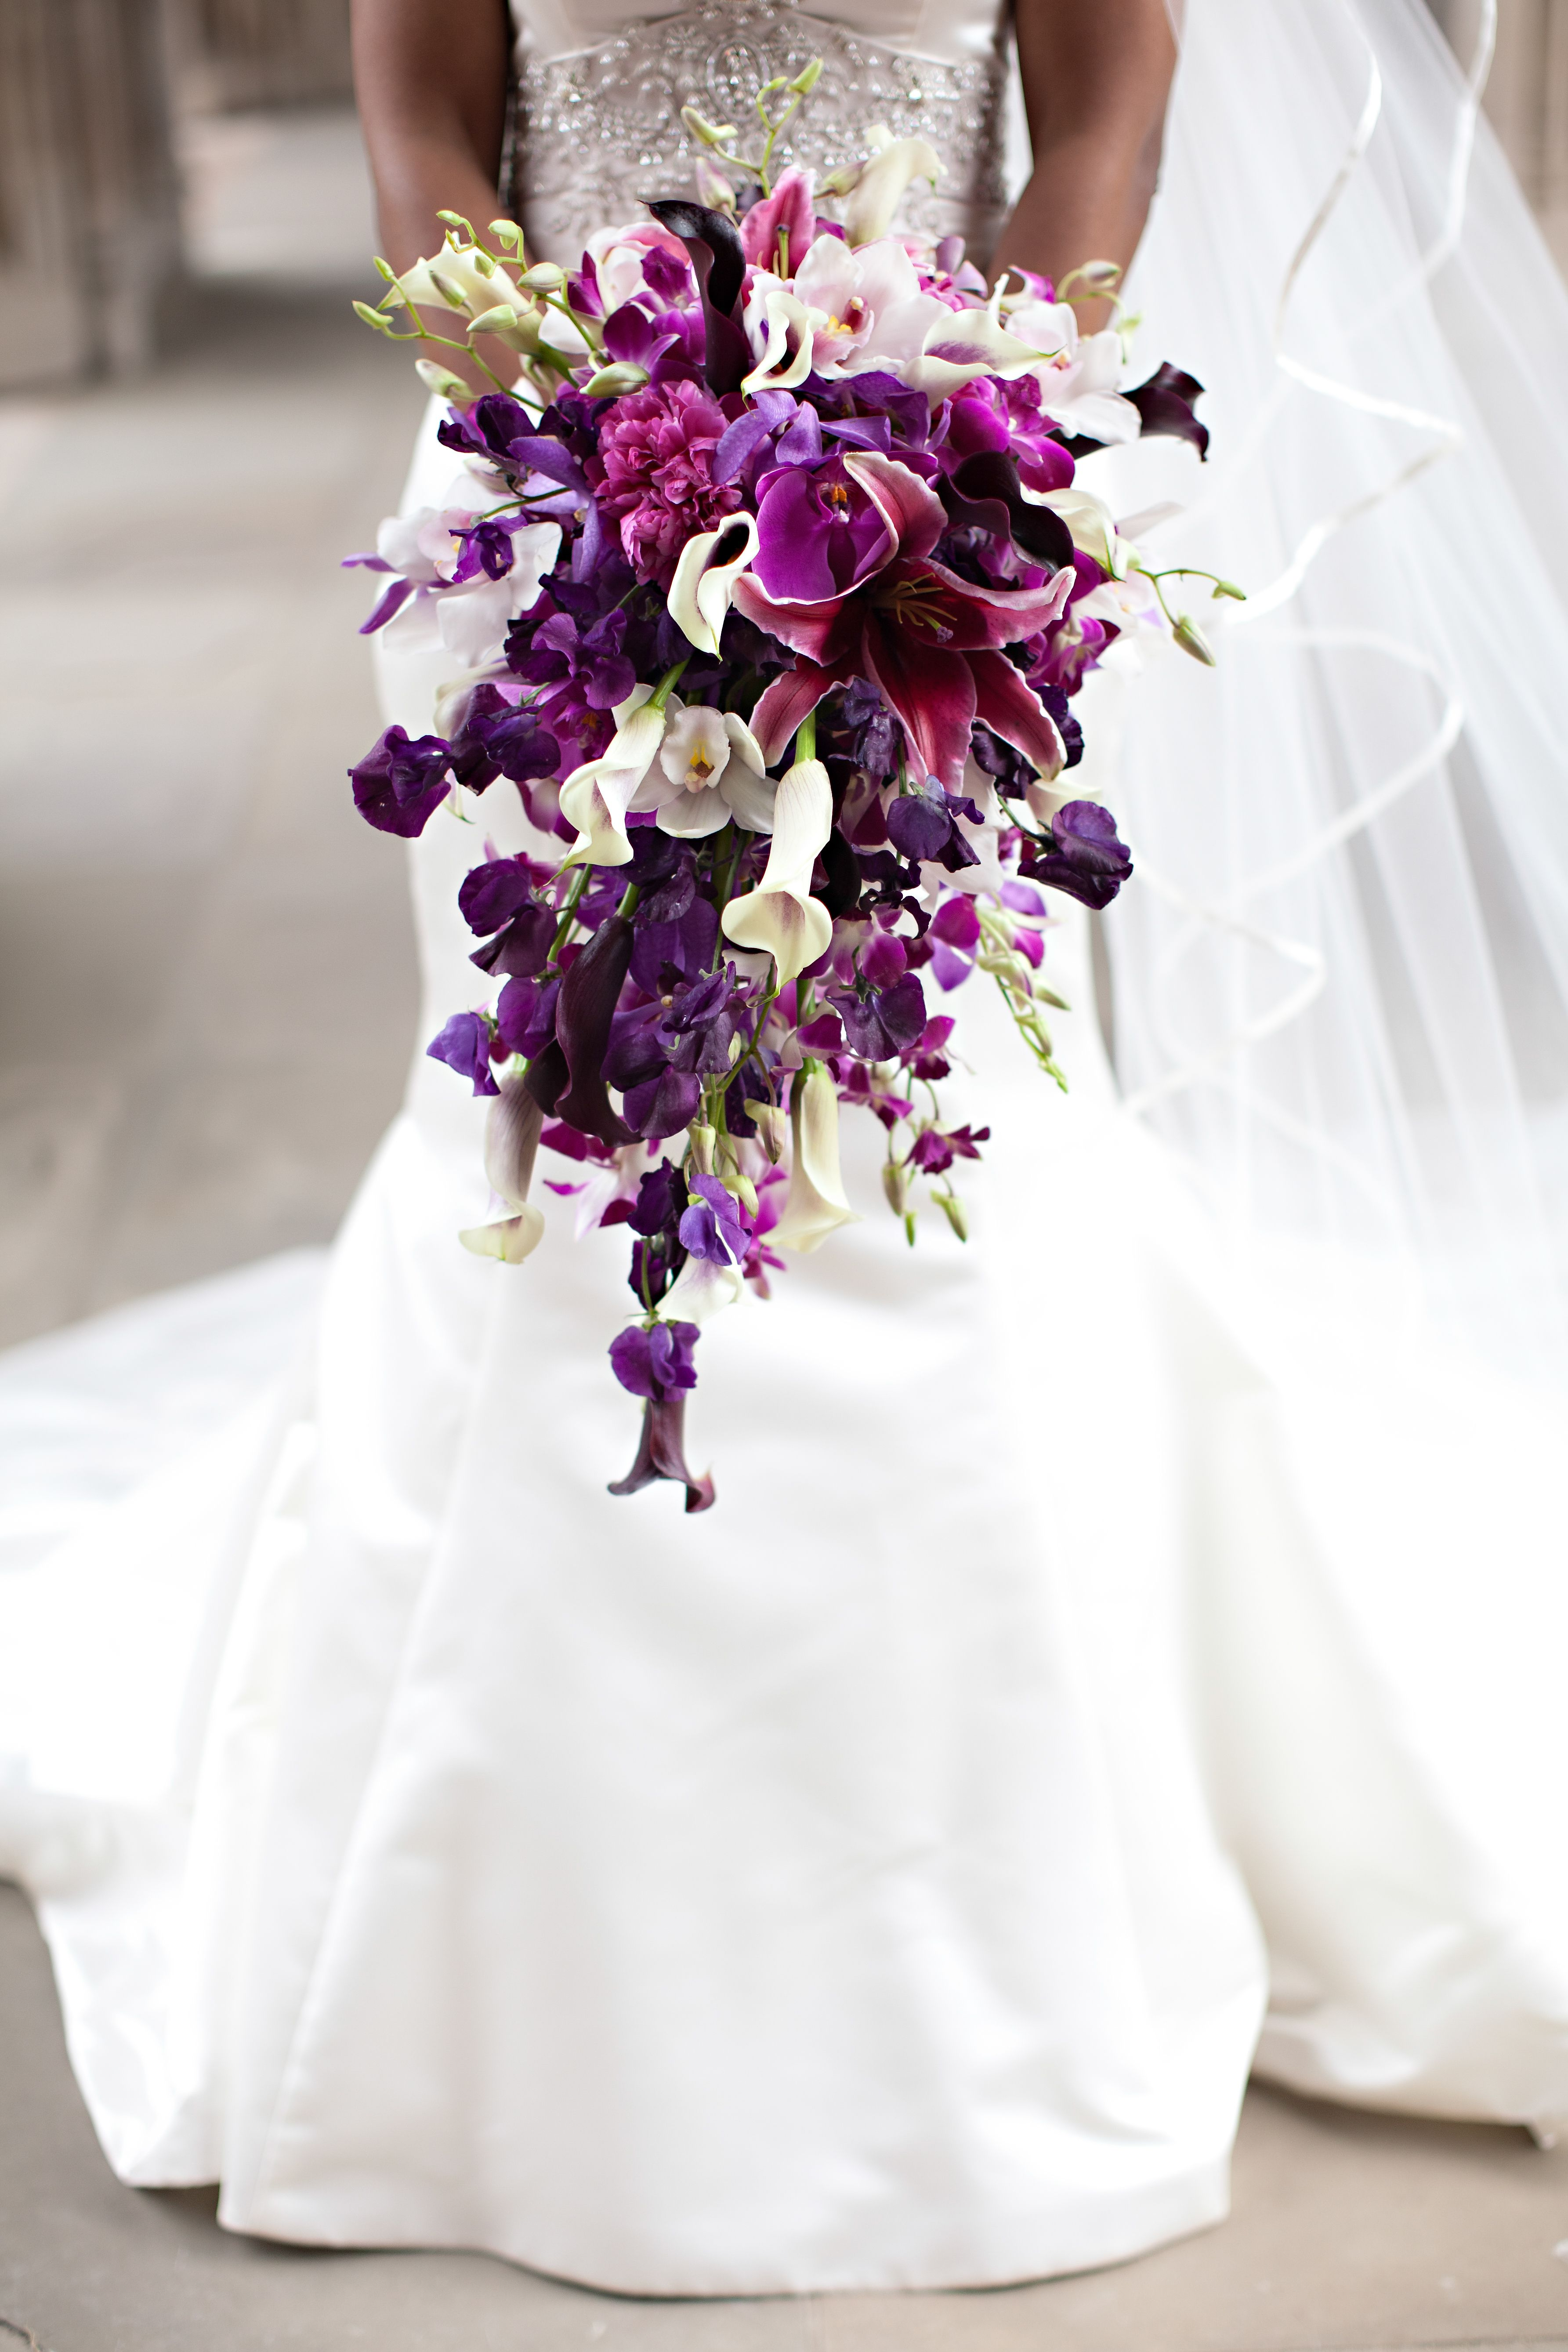 A beautiful purple inspired spray wedding bouquet filled with